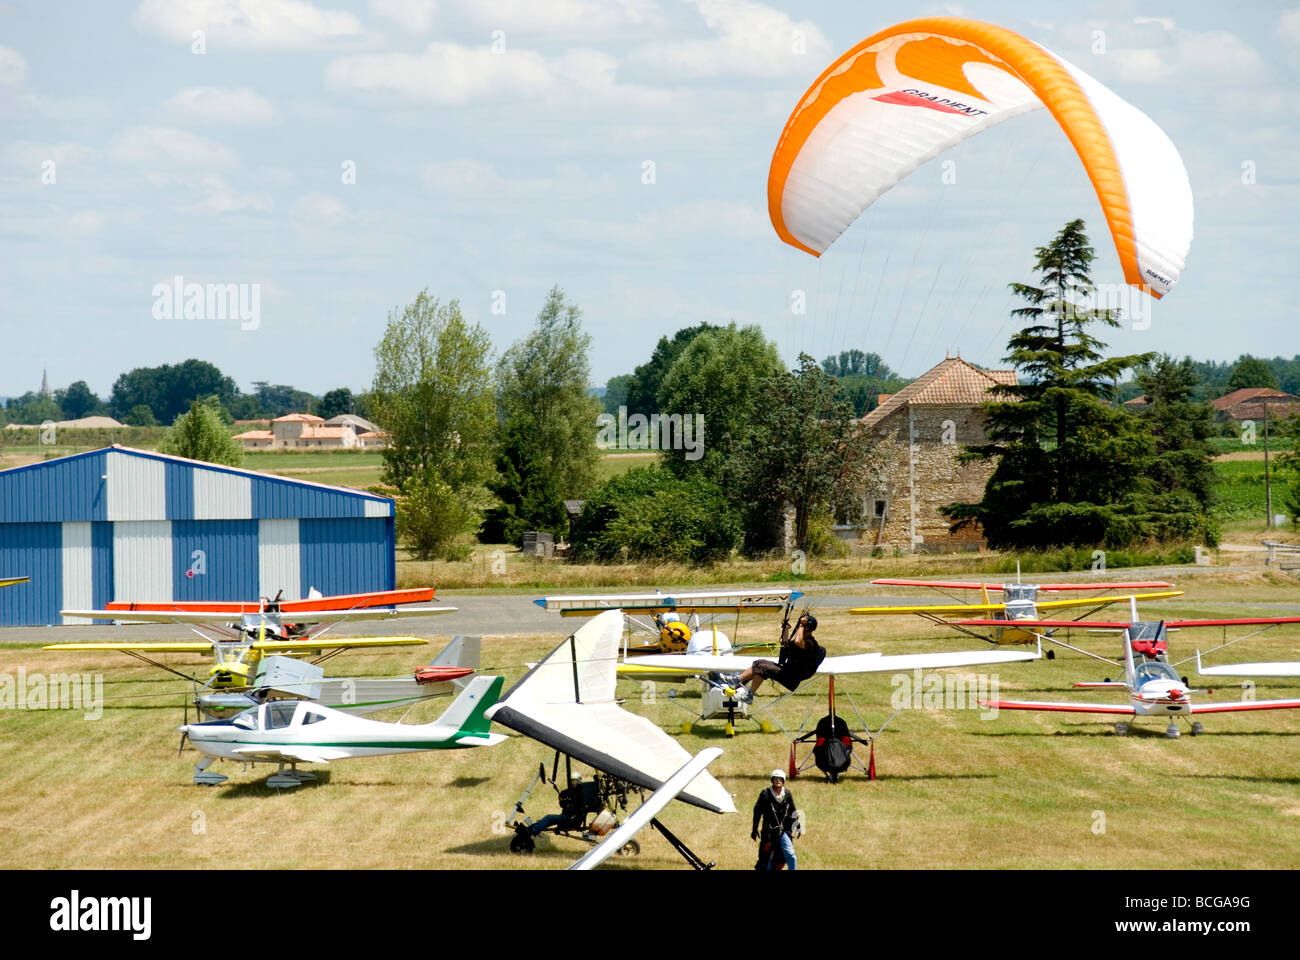 Paraglider coming in to land at an airshow in France Stock Photo